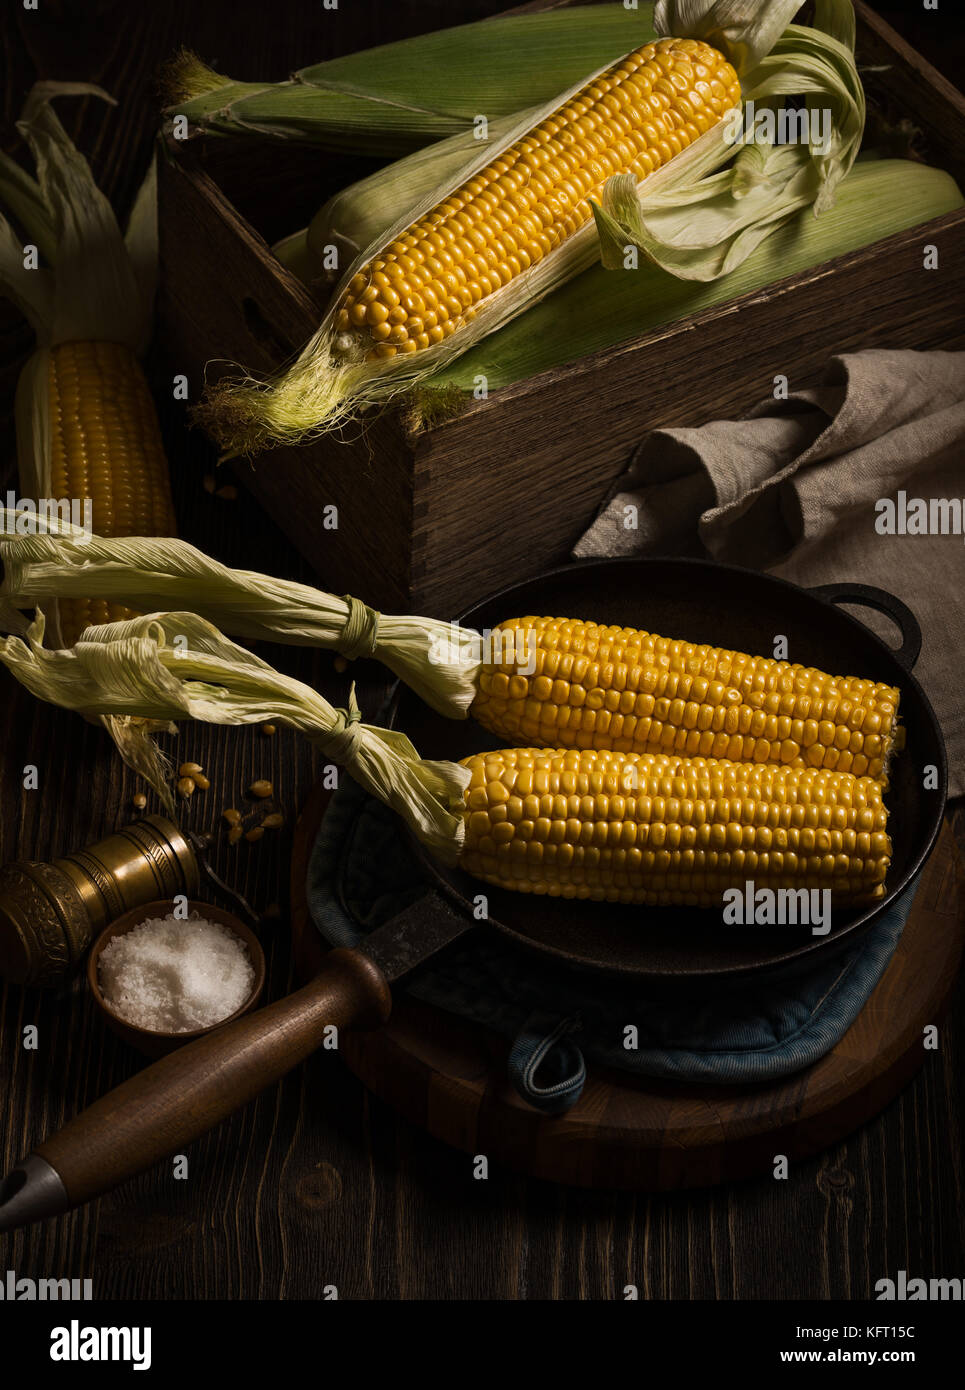 Corn cobs in the fry pan Stock Photo